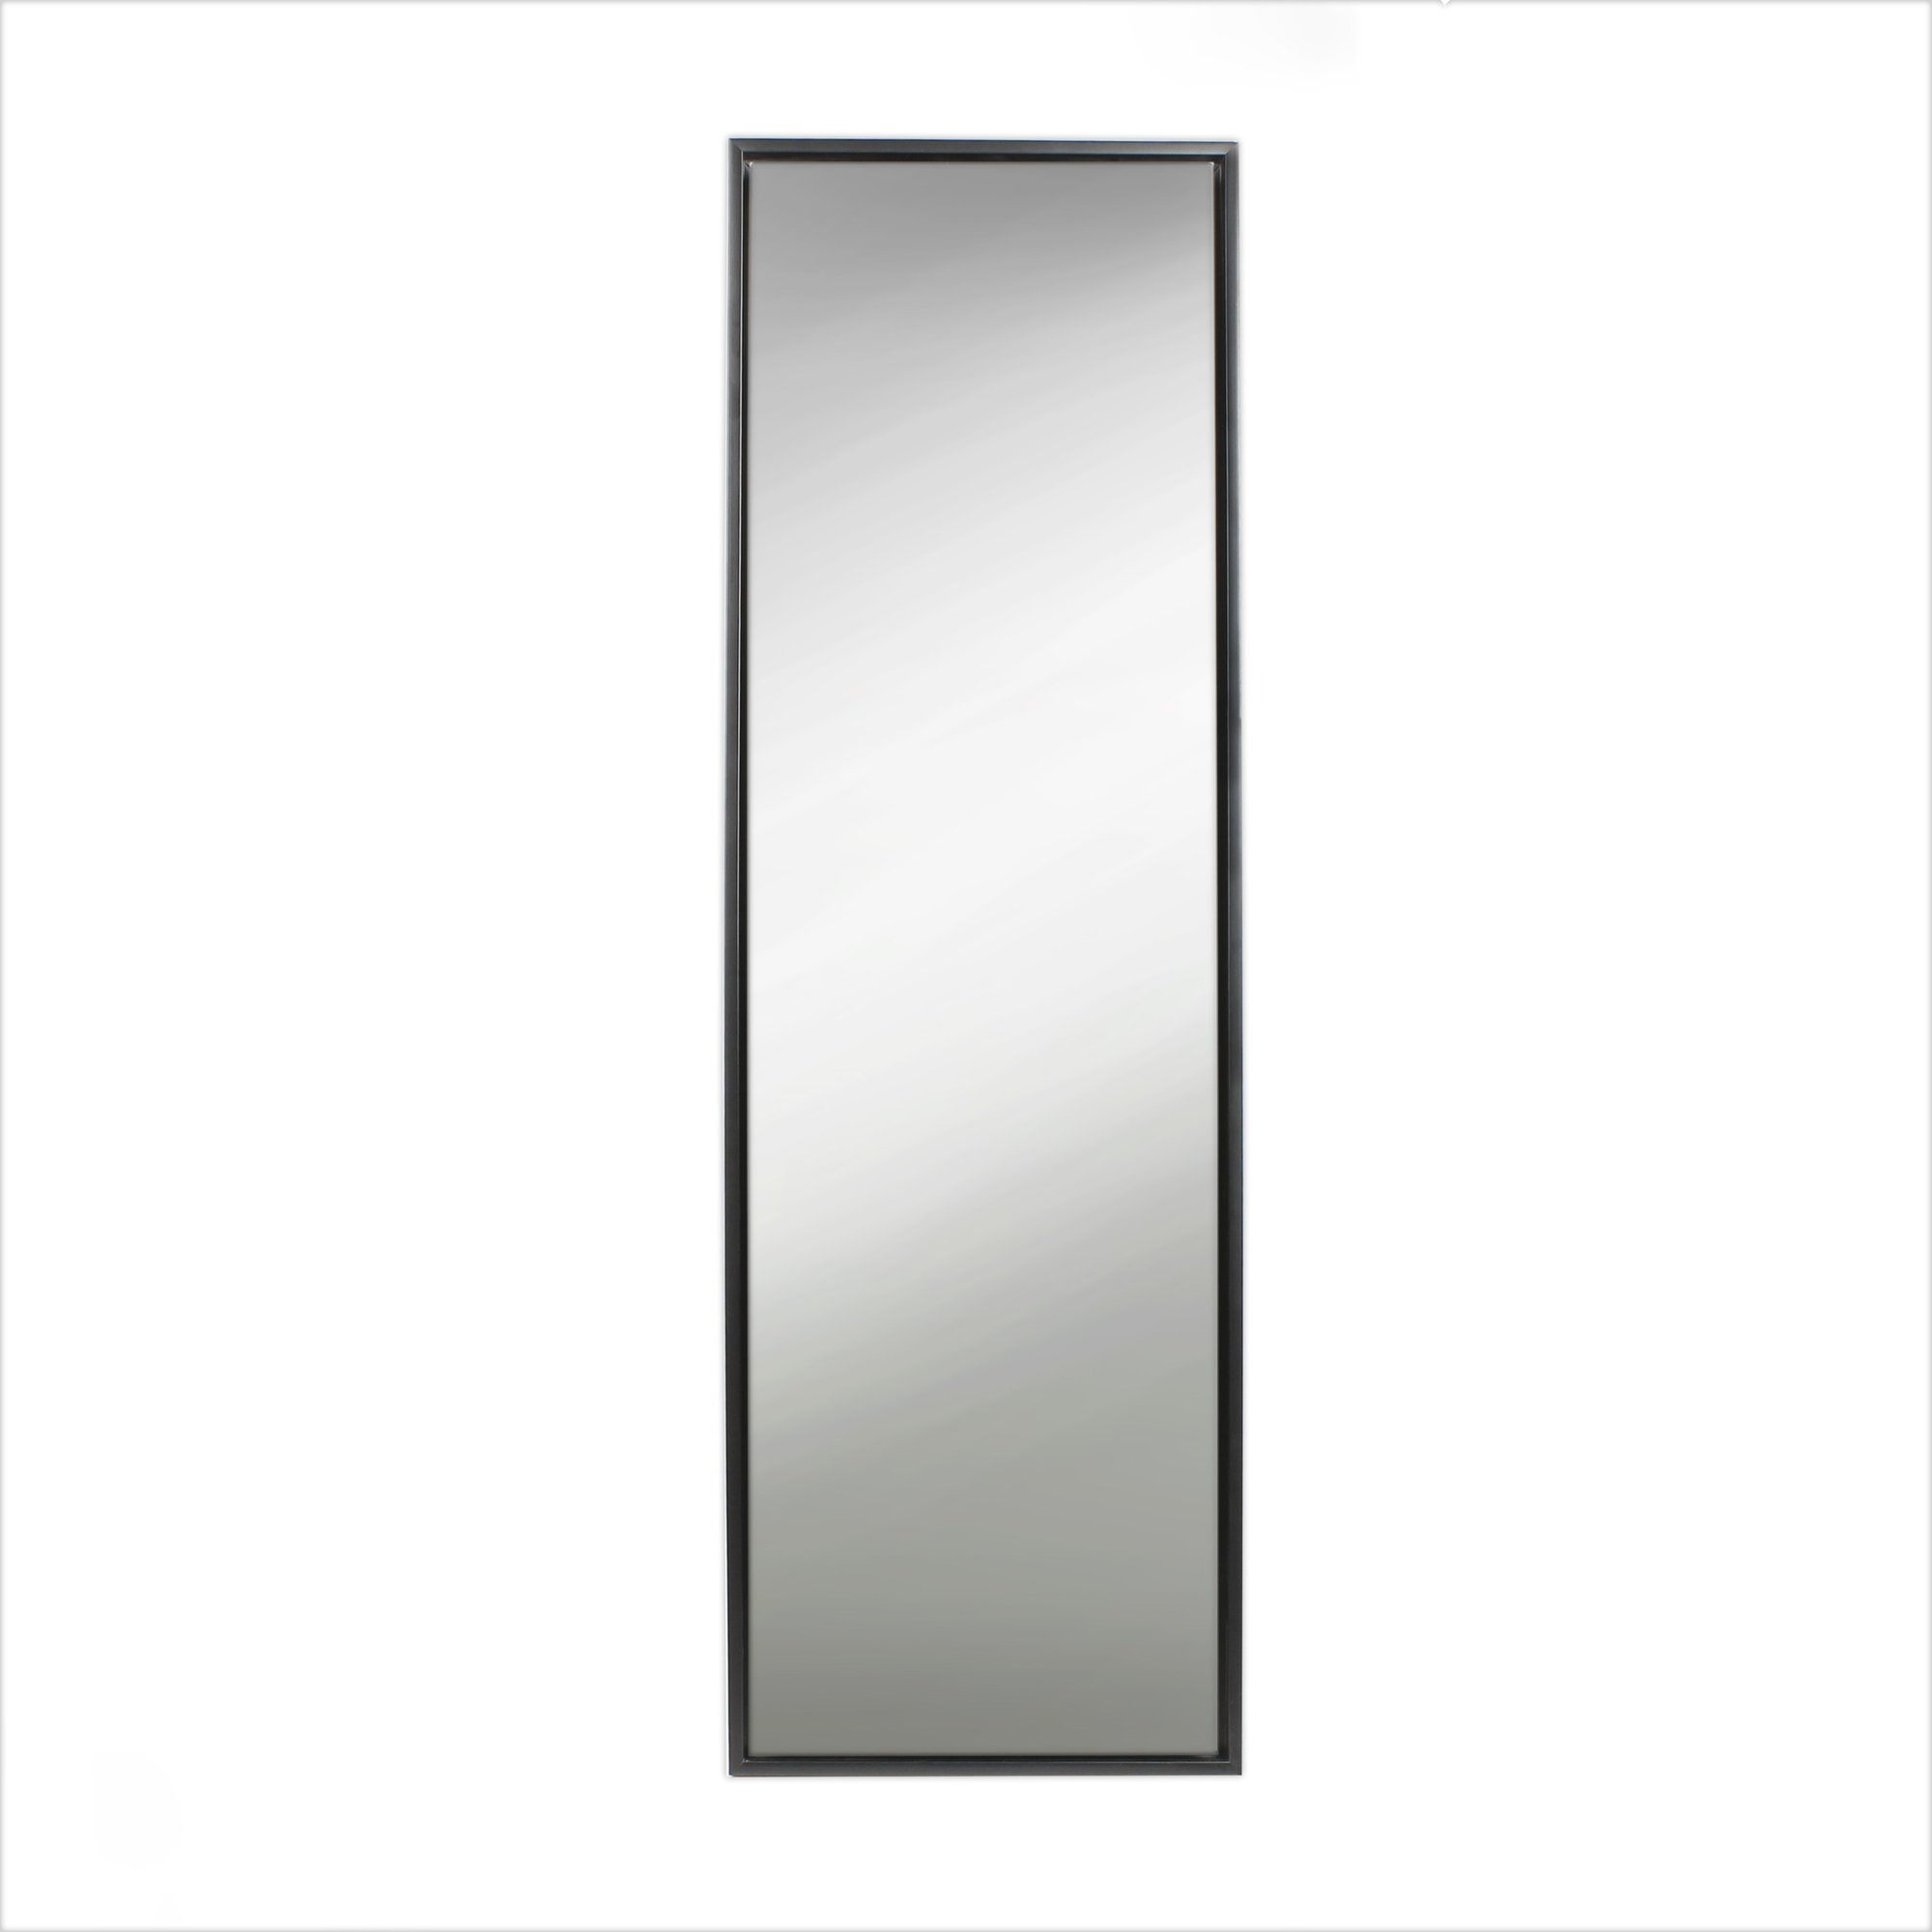 Kate And Laurel Evans Wood Framed Free Standing Mirror Reviews Inside Black Free Standing Mirror (Image 11 of 15)